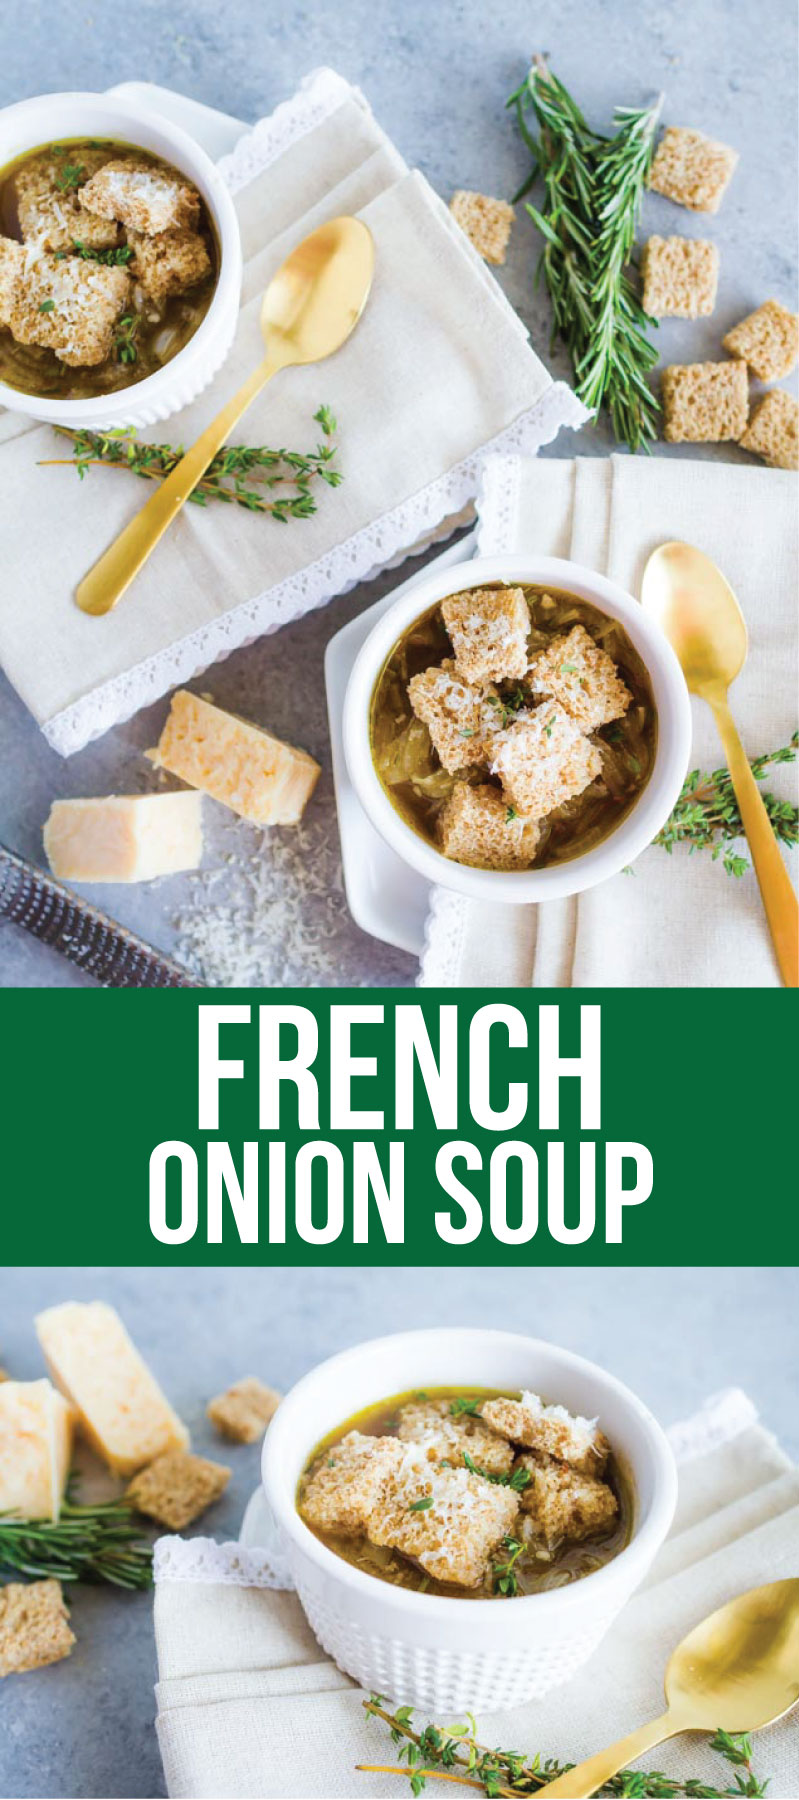 Lightened Up French Onion Soup - a delicious take on an old classic from Movara Fitness Resort